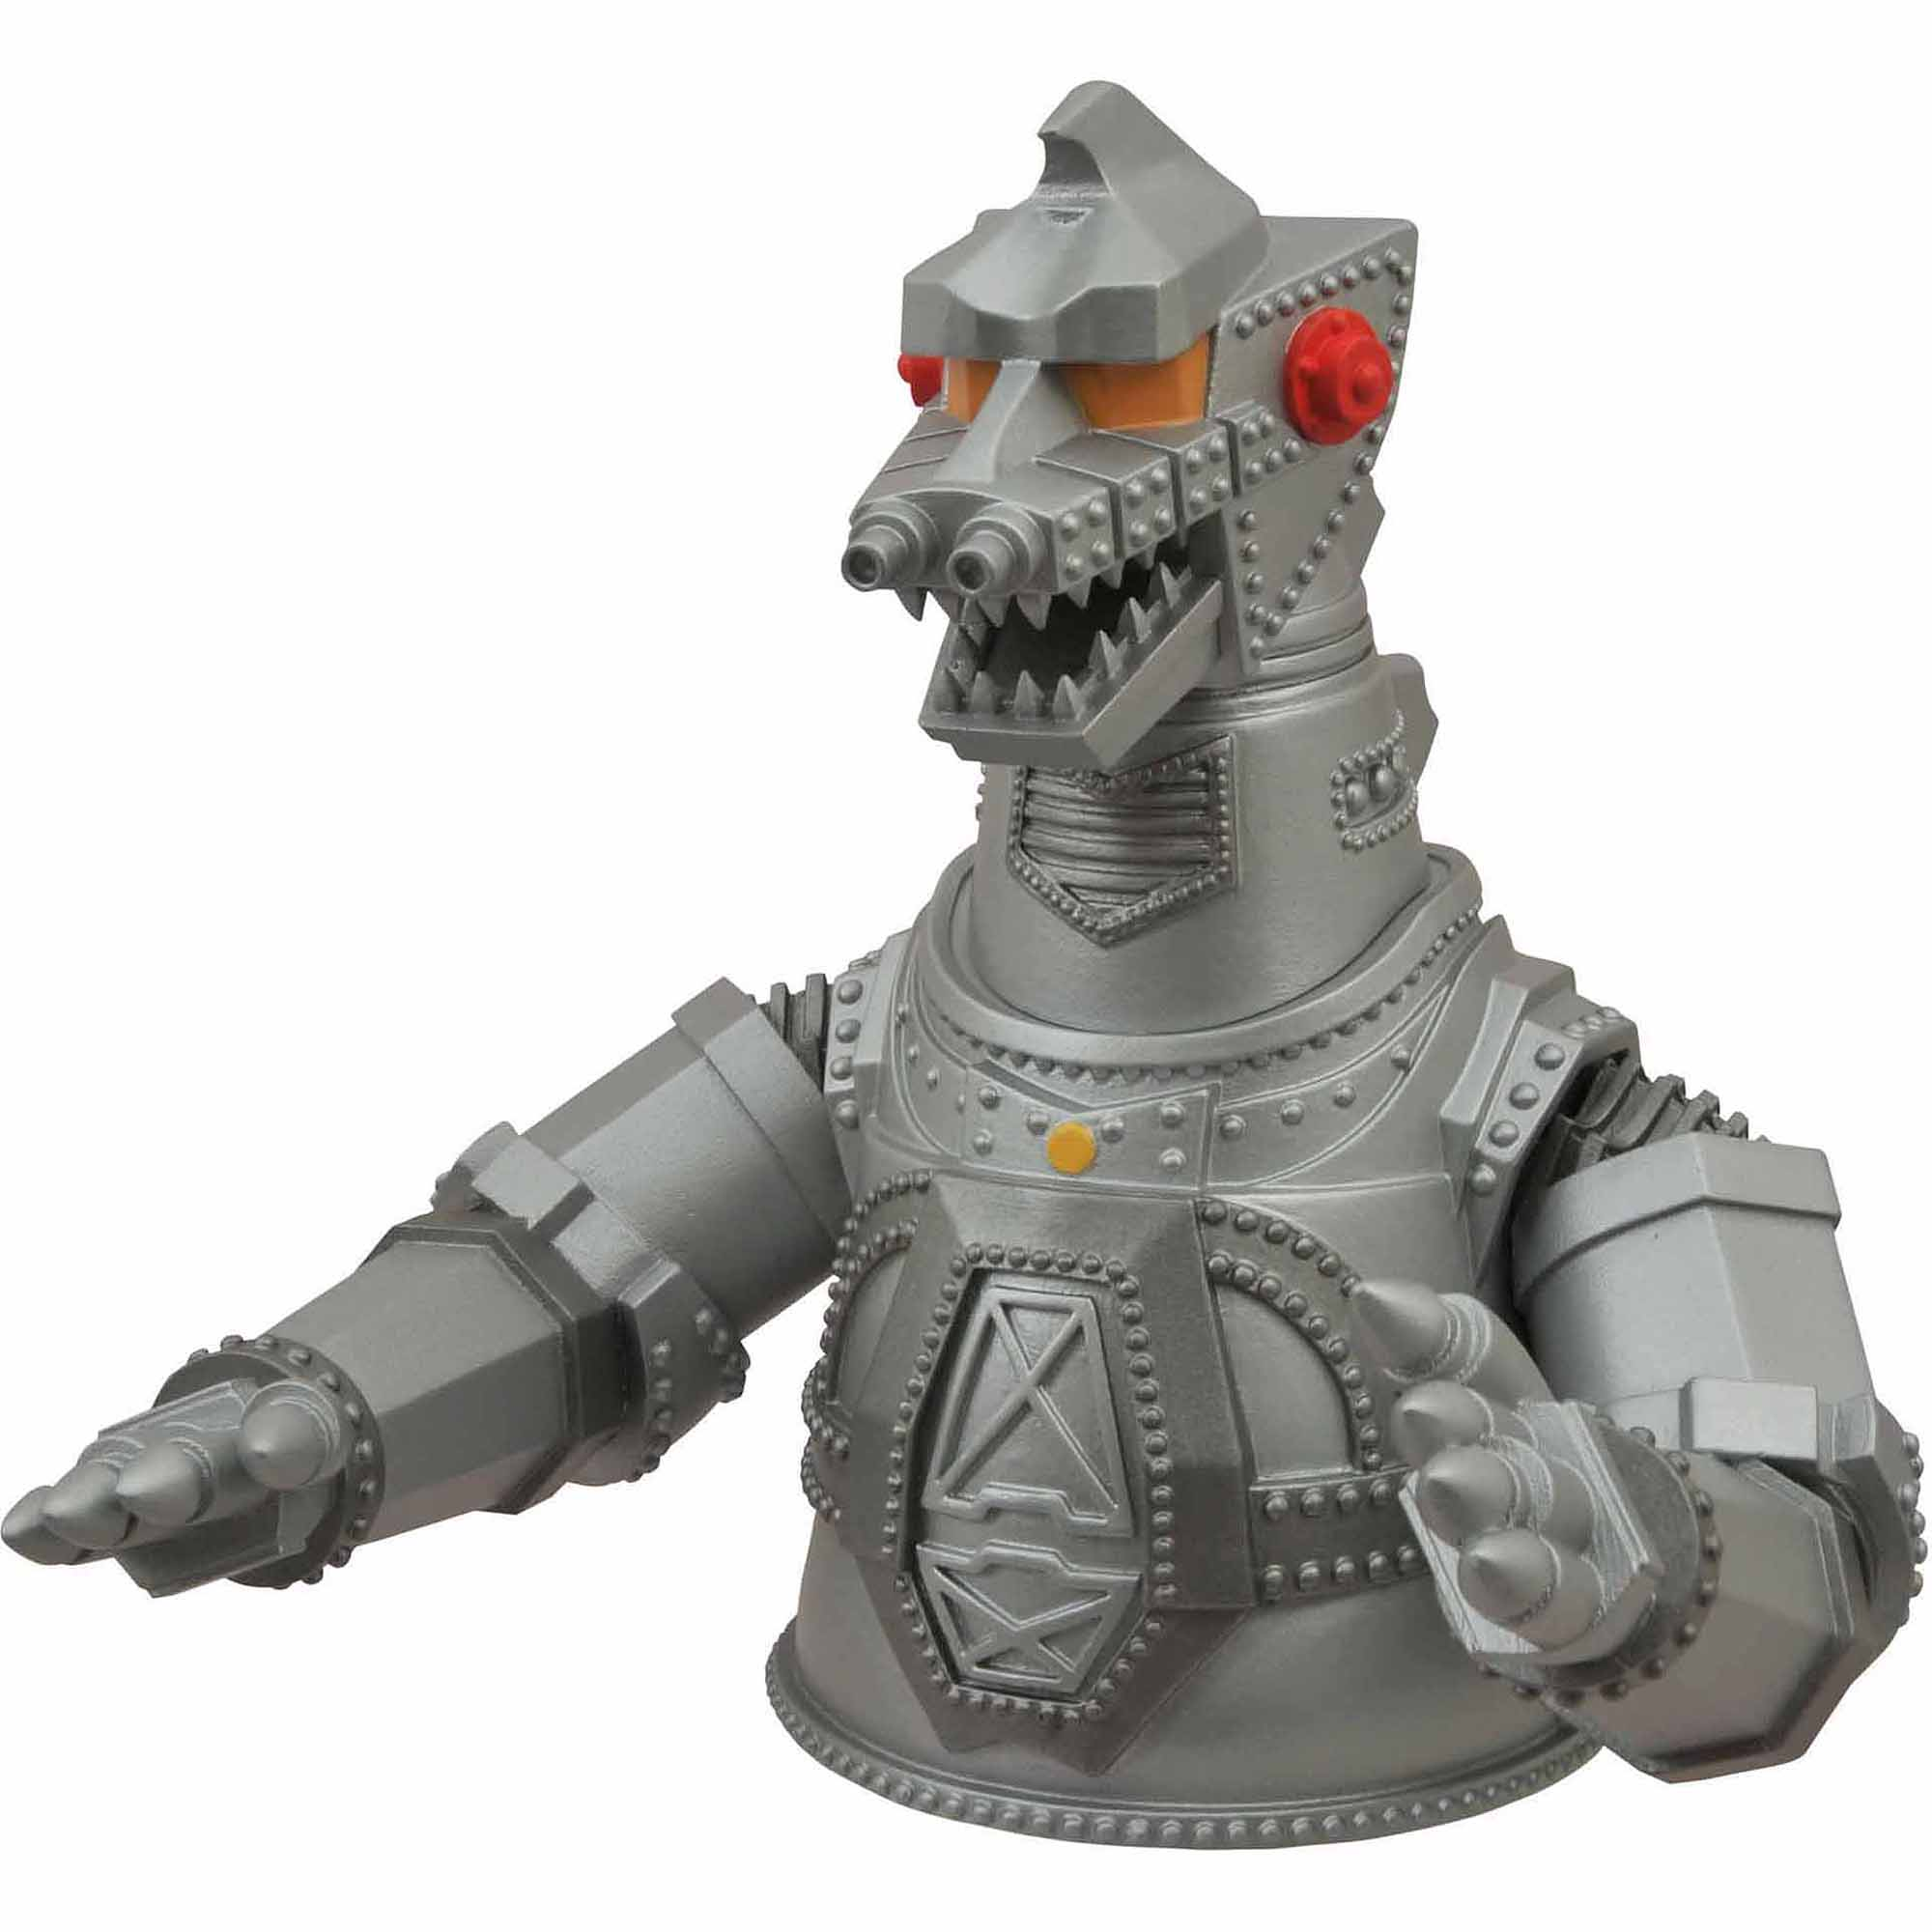 Diamond Select Toys Godzilla Mechagodzilla Vinyl Bust Bank